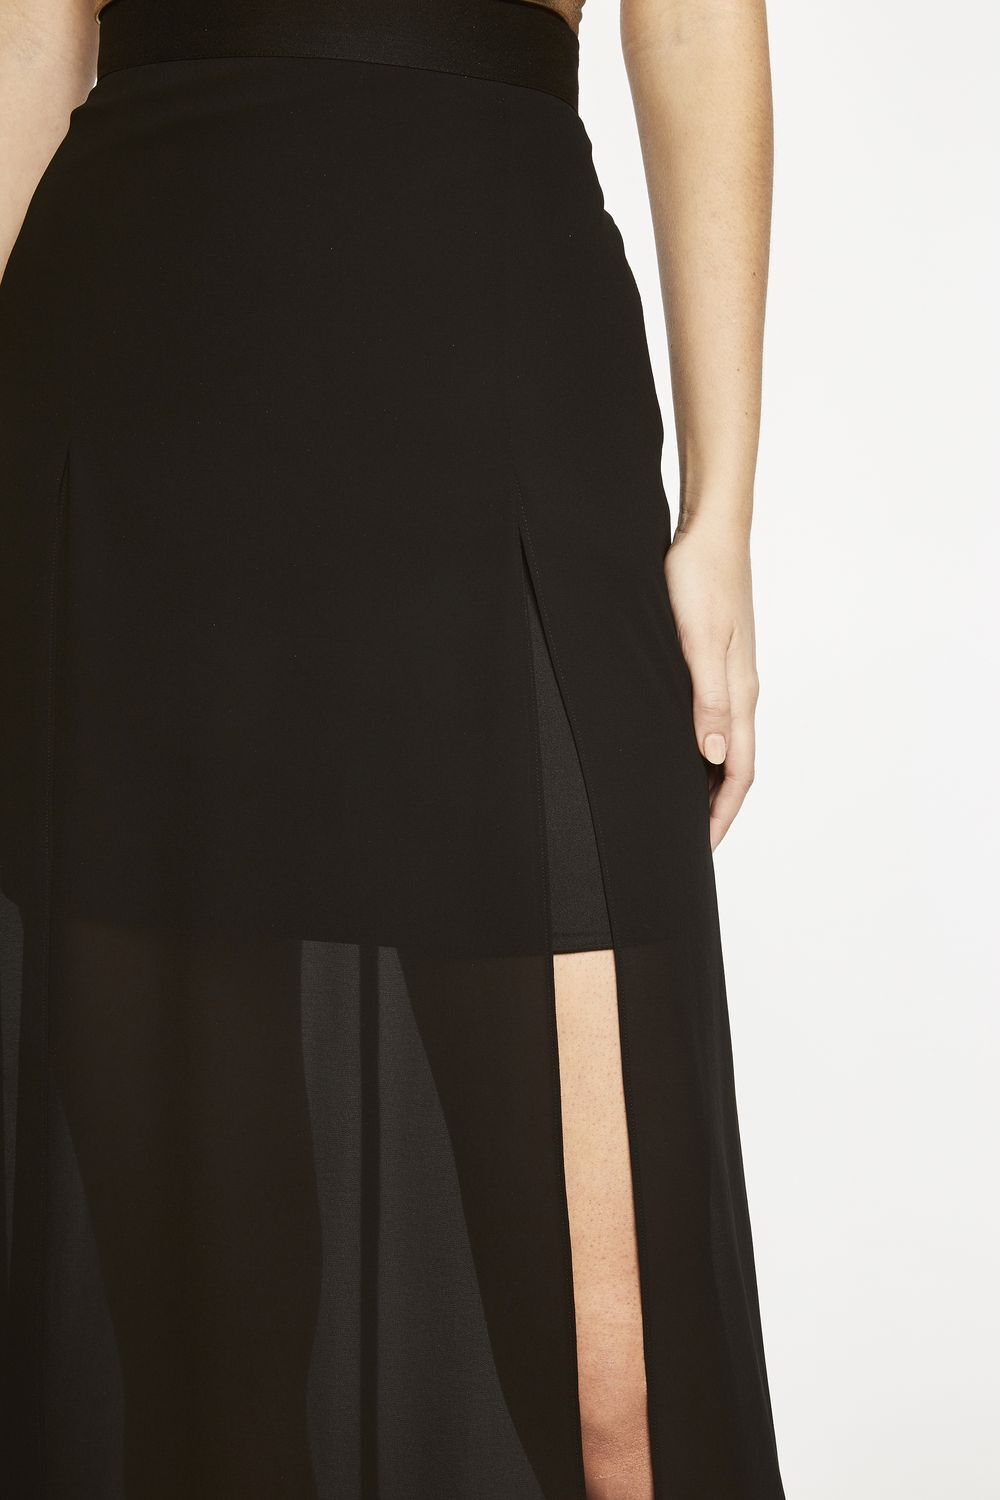 JACKIE SPLIT SKIRT in colour CAVIAR